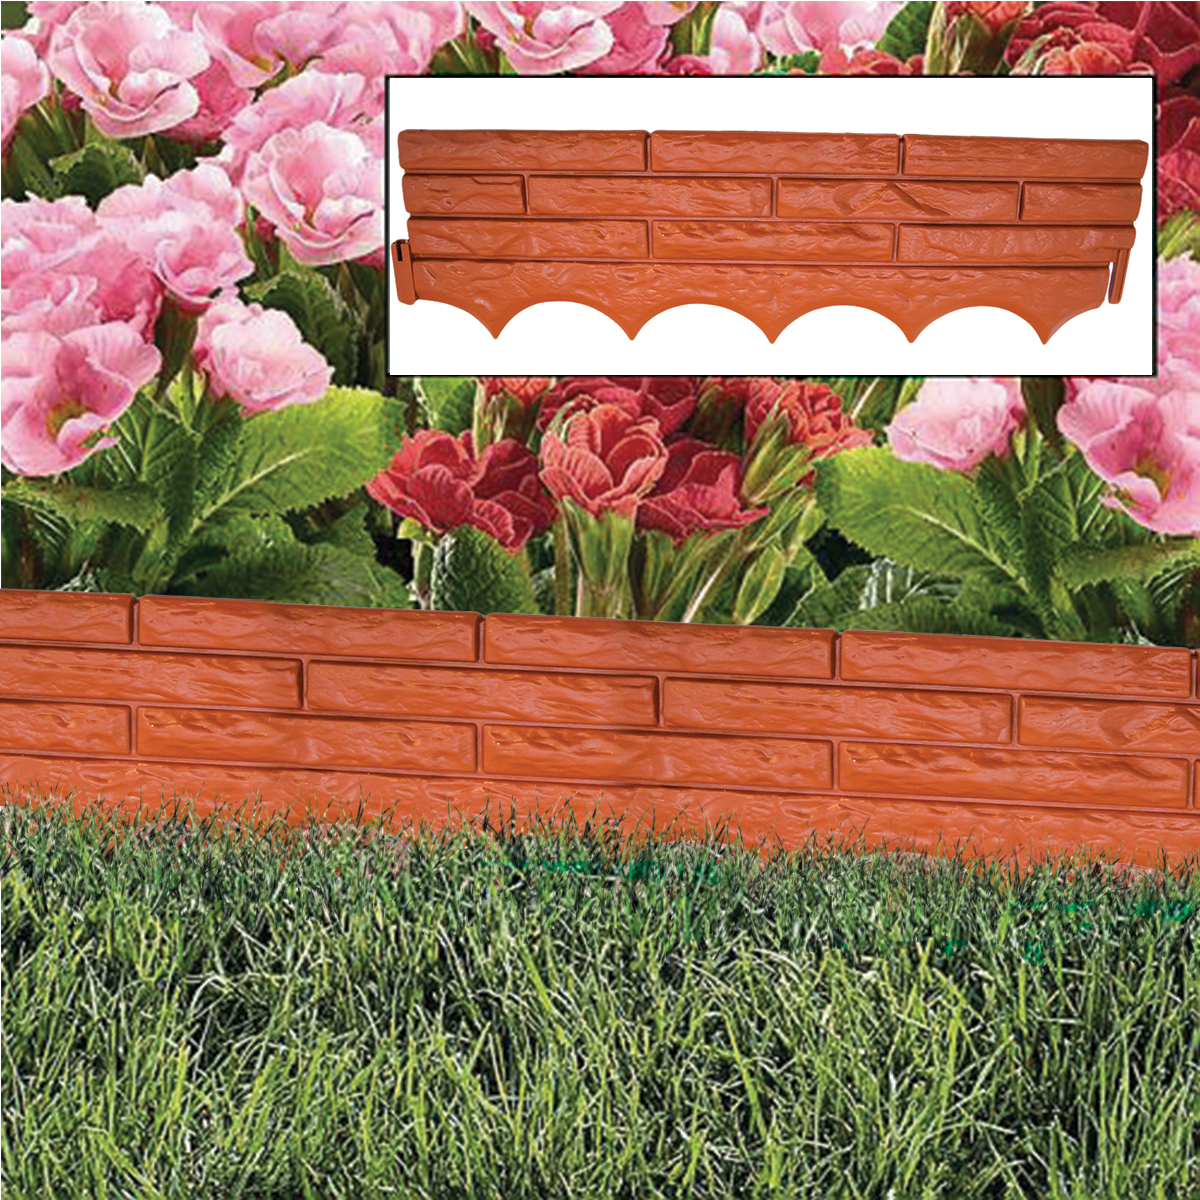 sentinel red brick wall garden edging plastic lawn flower bed border grass path liner - Plastic Garden Edging